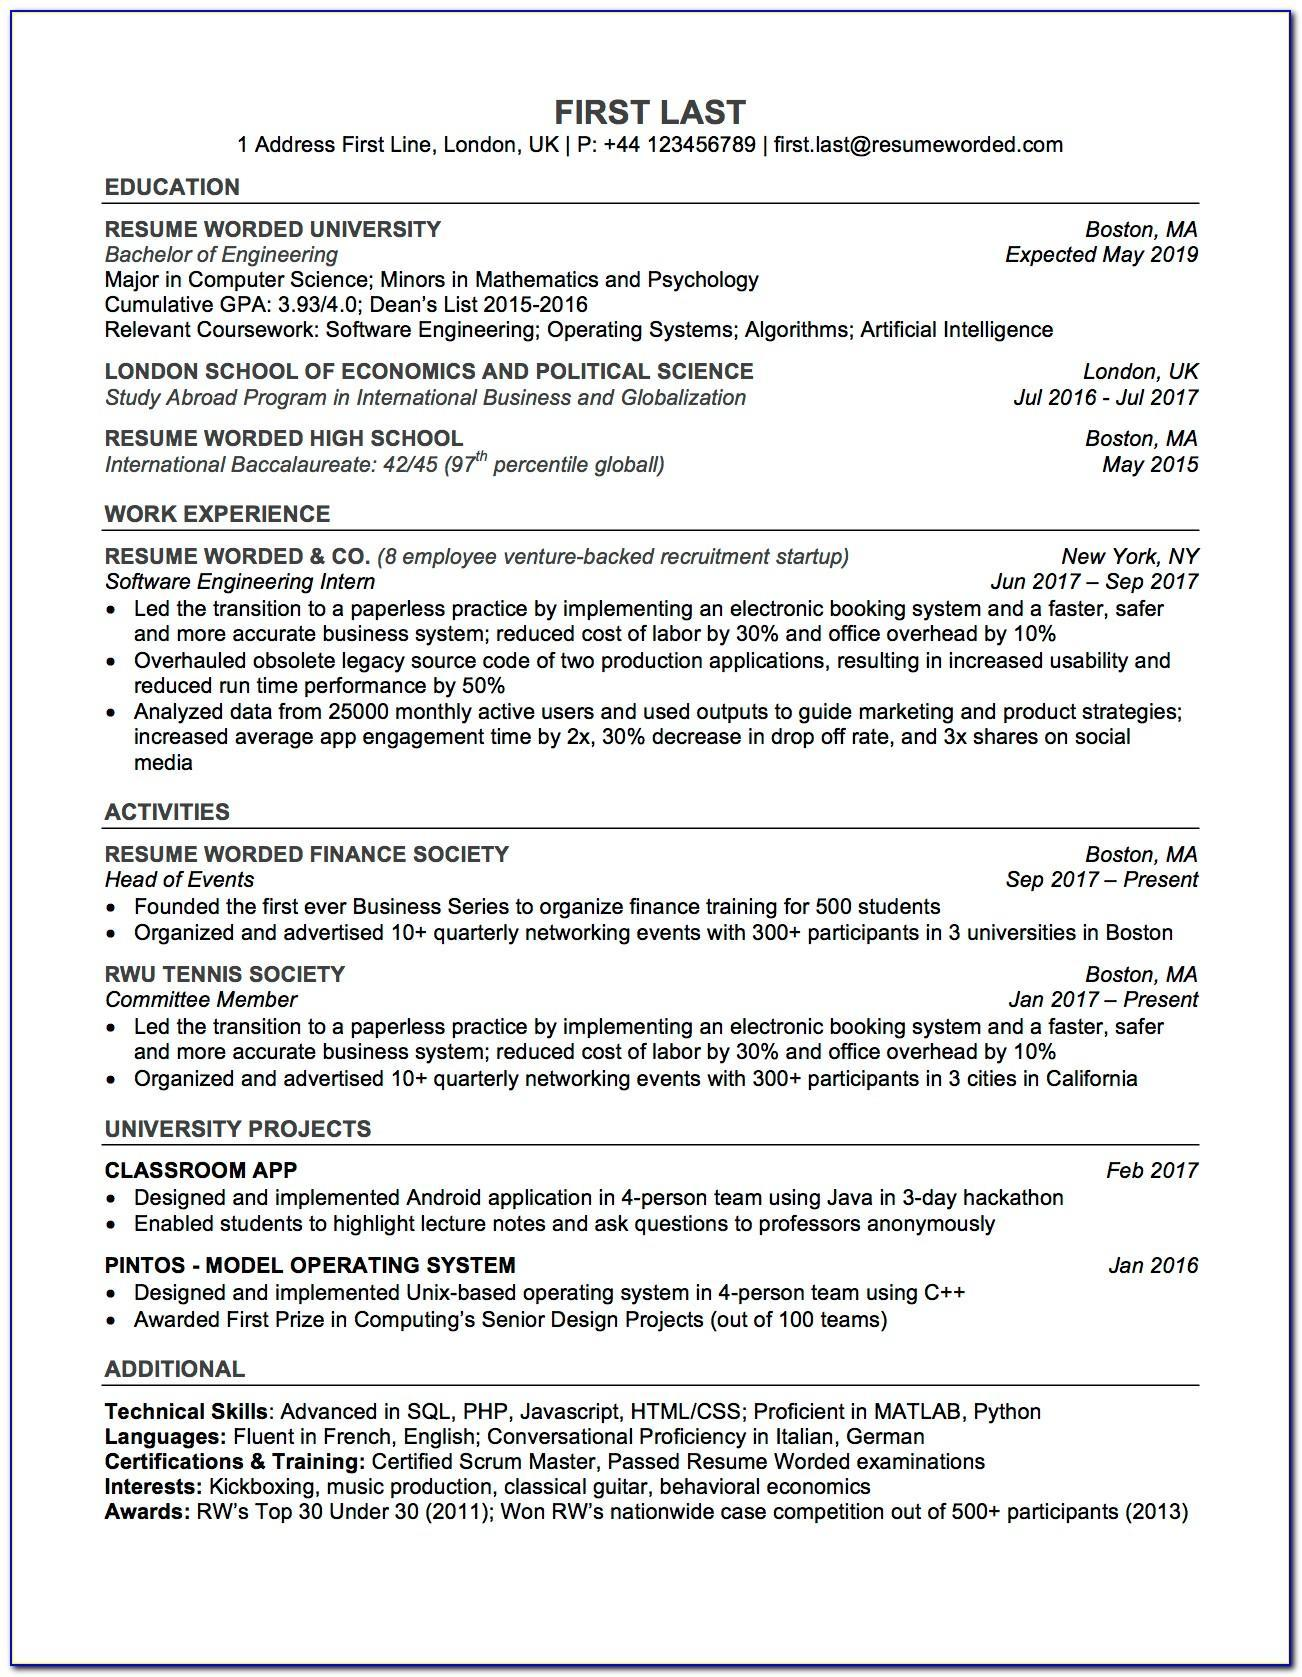 ats compliant resume template free vincegray2014 collection agent job description and Resume Ats Compliant Resume Template